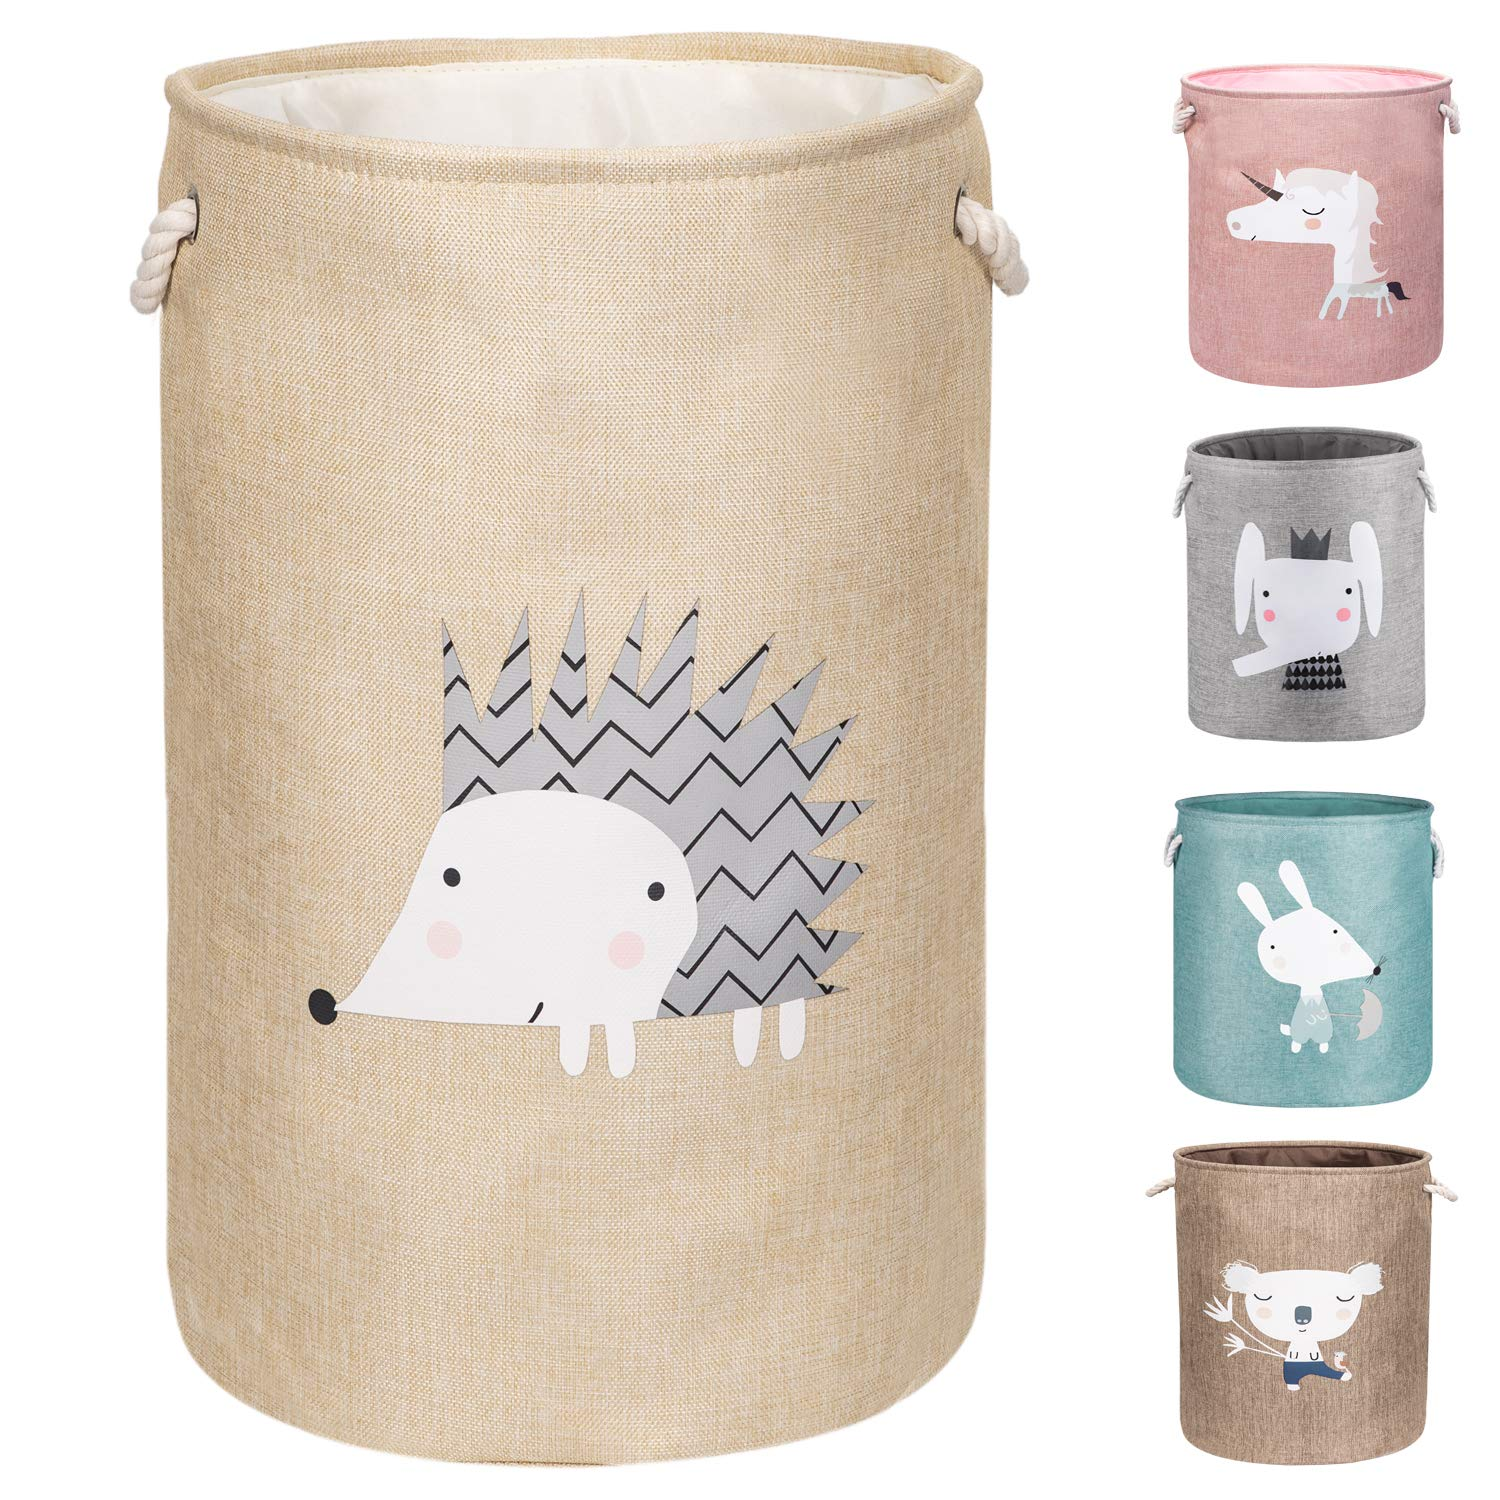 """AXHOP 22"""" Upgrade Large Collapsible Laundry Basket with Lid, Toy Storage Baskets Bin for Kids, Dog, Toys, Blanket, Clothes, Cute Animal Laundry Hamper (Hedgehog)"""